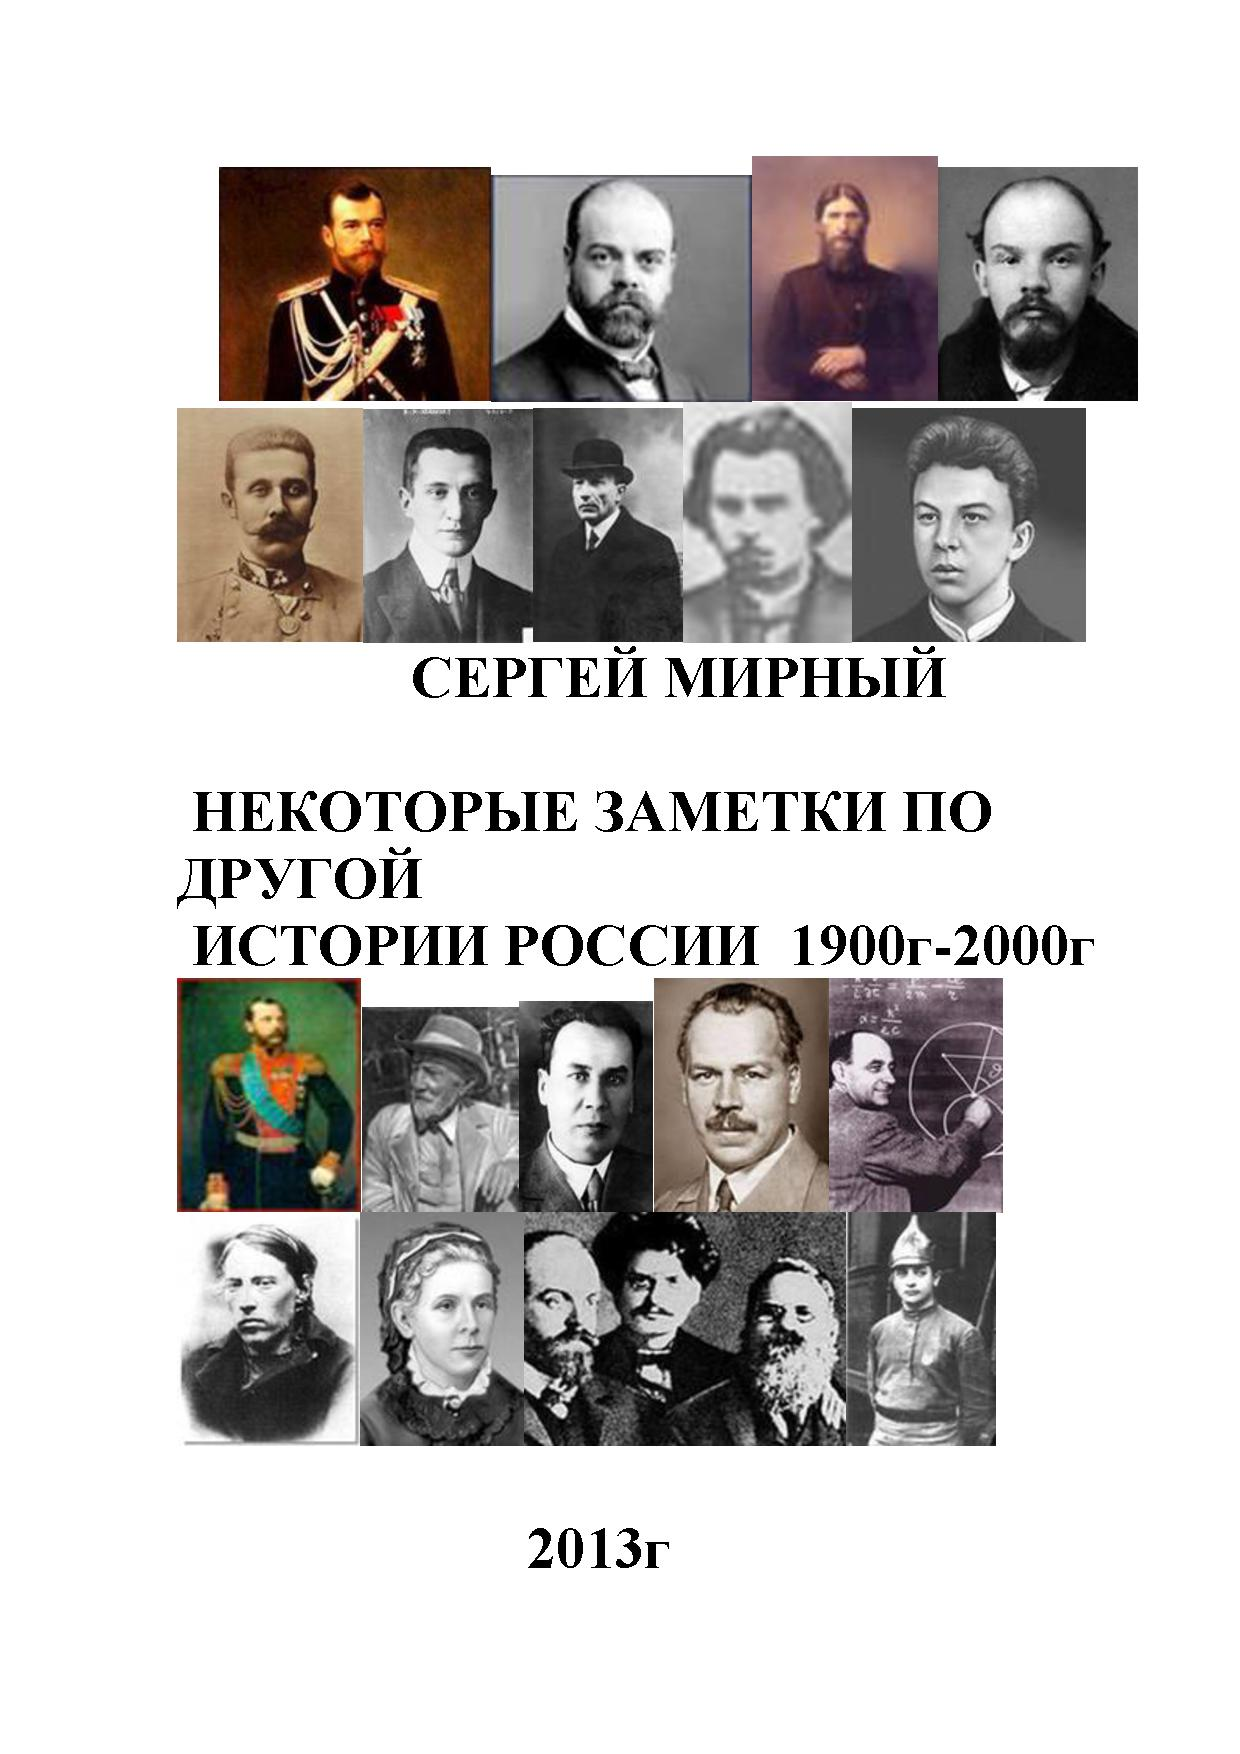 Some other notes on the history of Rossia 1900-2000